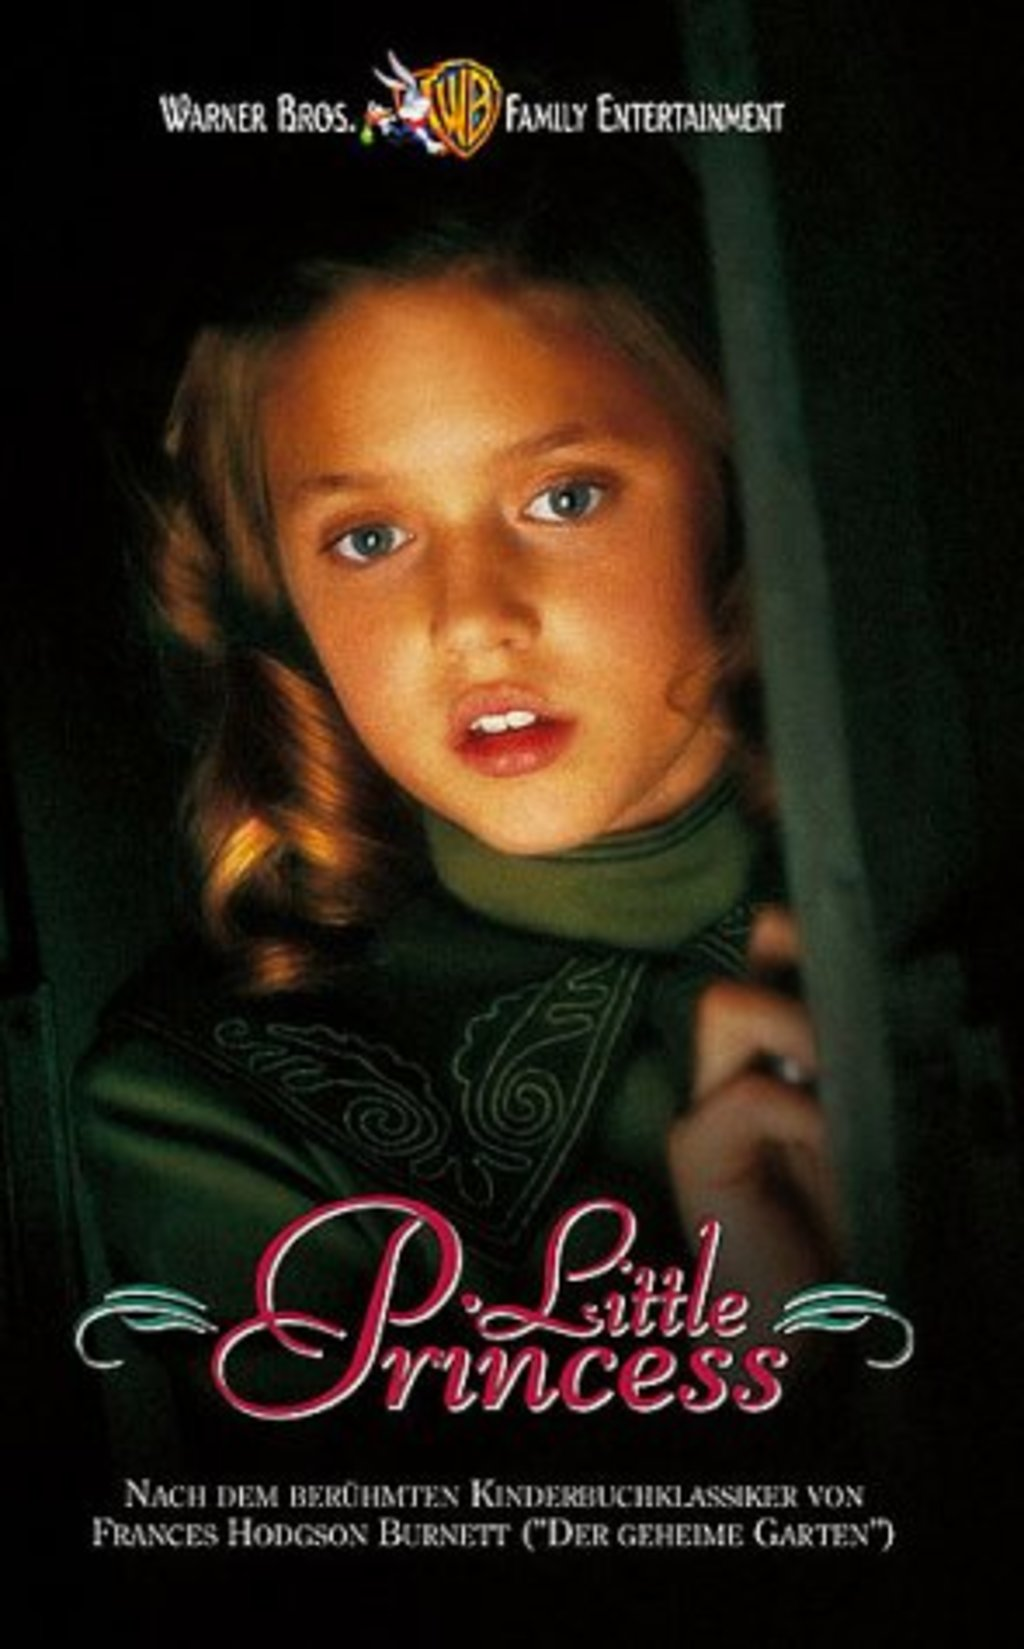 Watch A Little Princess On Netflix Today Netflixmovies Com